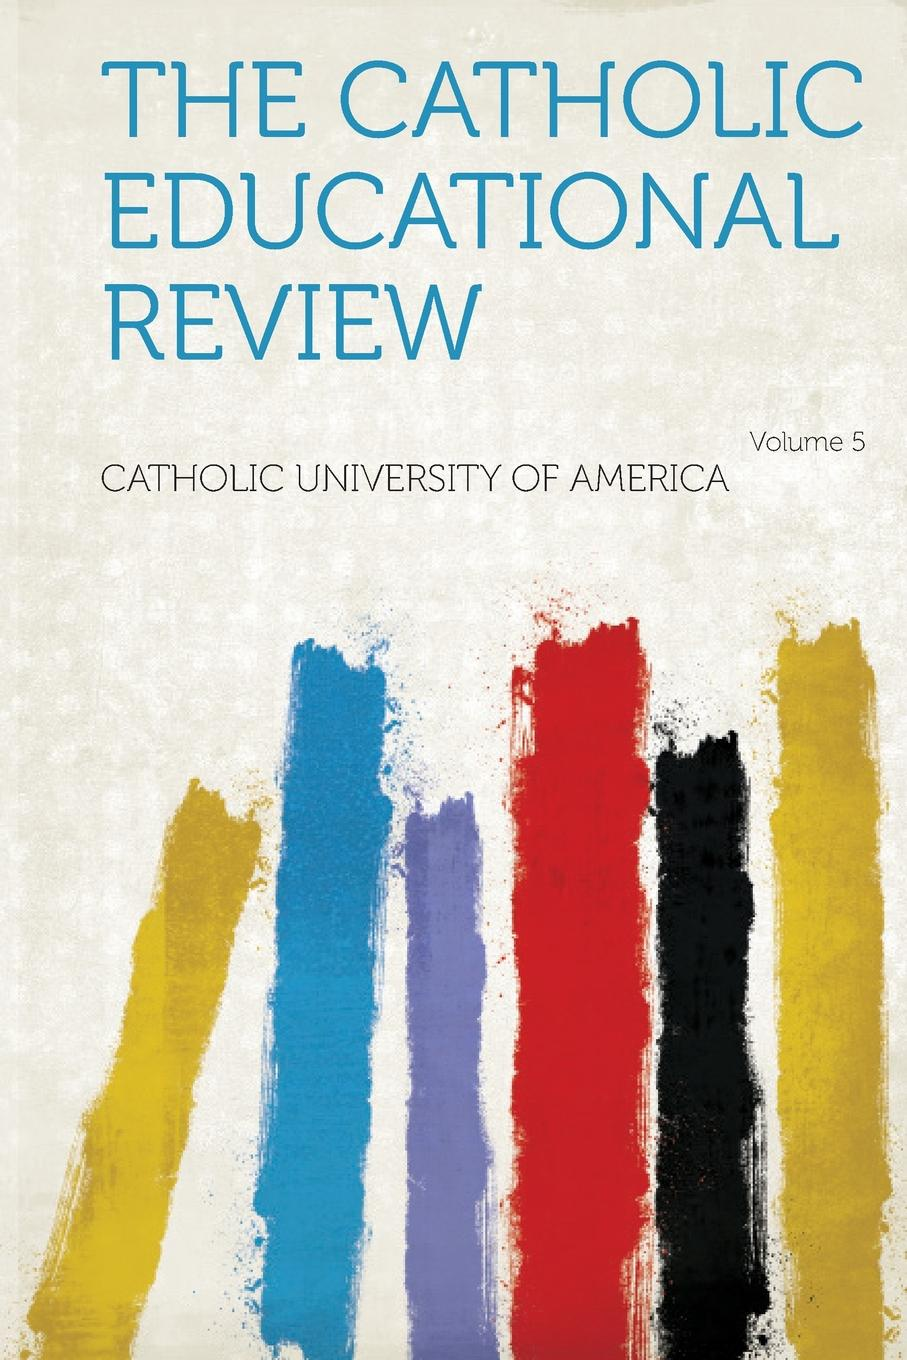 The Catholic Educational Review Volume 5